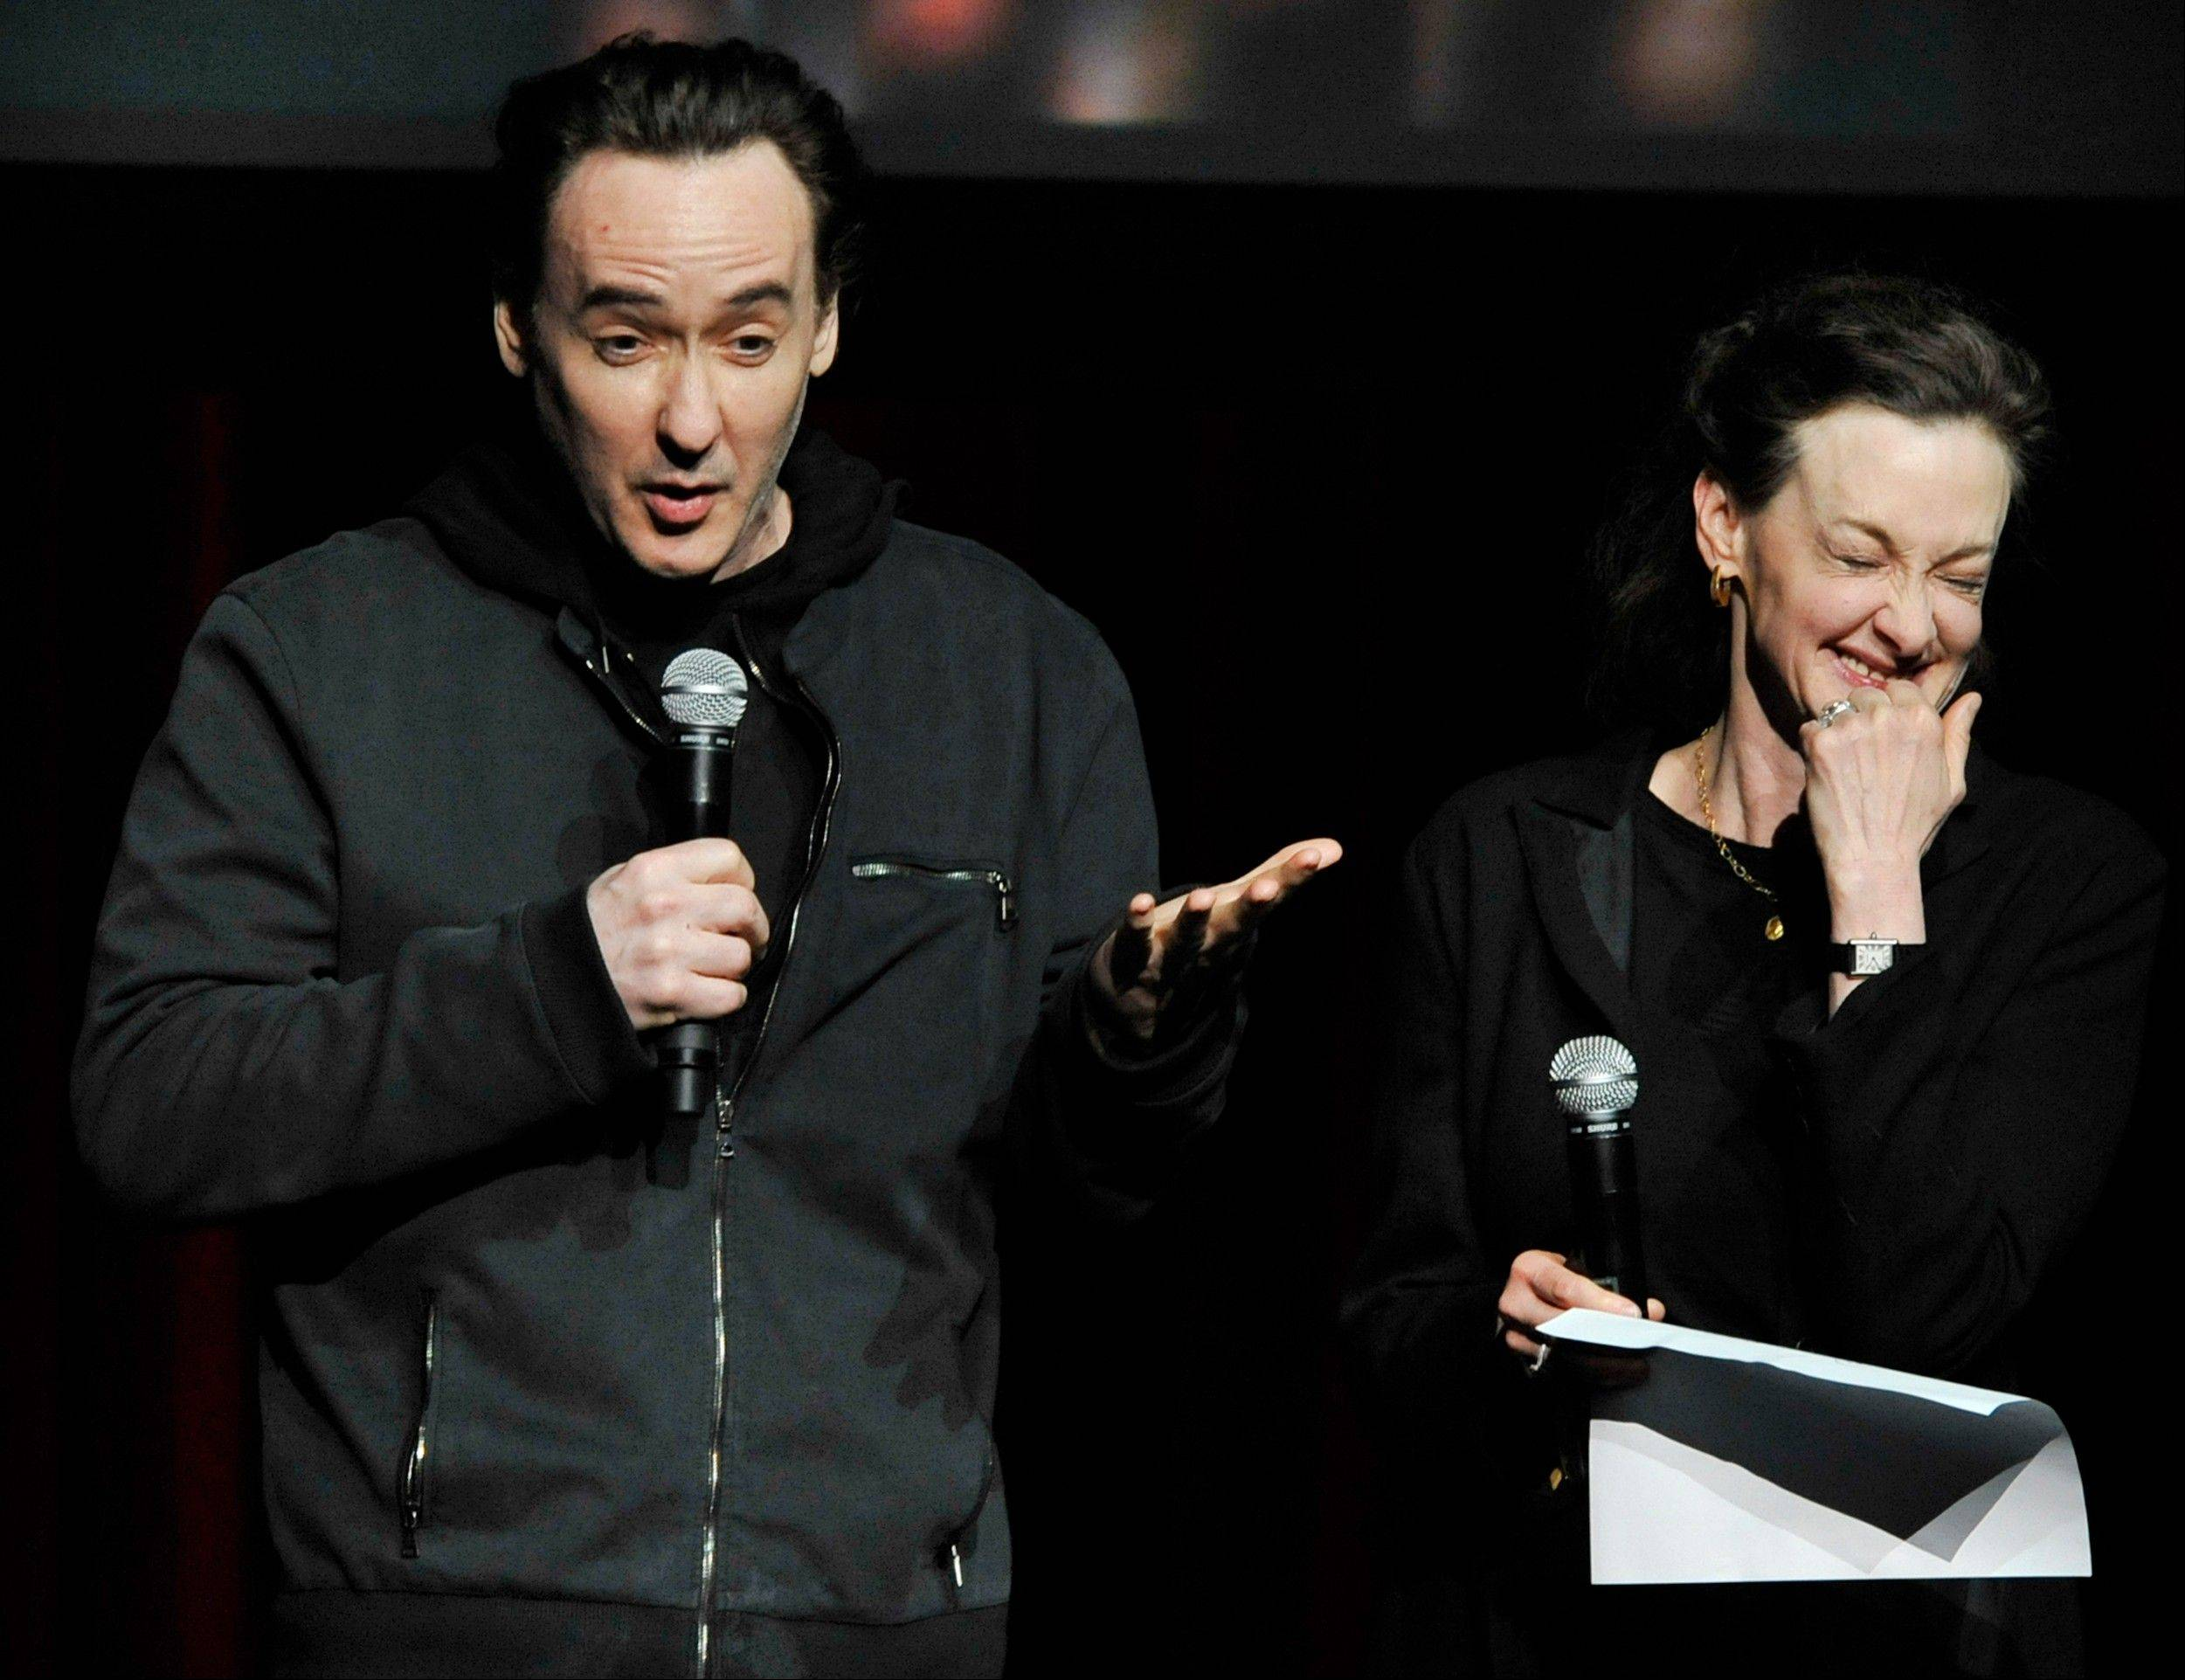 Actors John Cusack left, and Joan Cusack right, talk about Roger Ebert during a memorial for the film critic at The Chicago Theater in Chicago, Thursday, April 11, 2013. The Pulitzer Prize winning critic died last week at the age of 70 after a long battle with cancer.